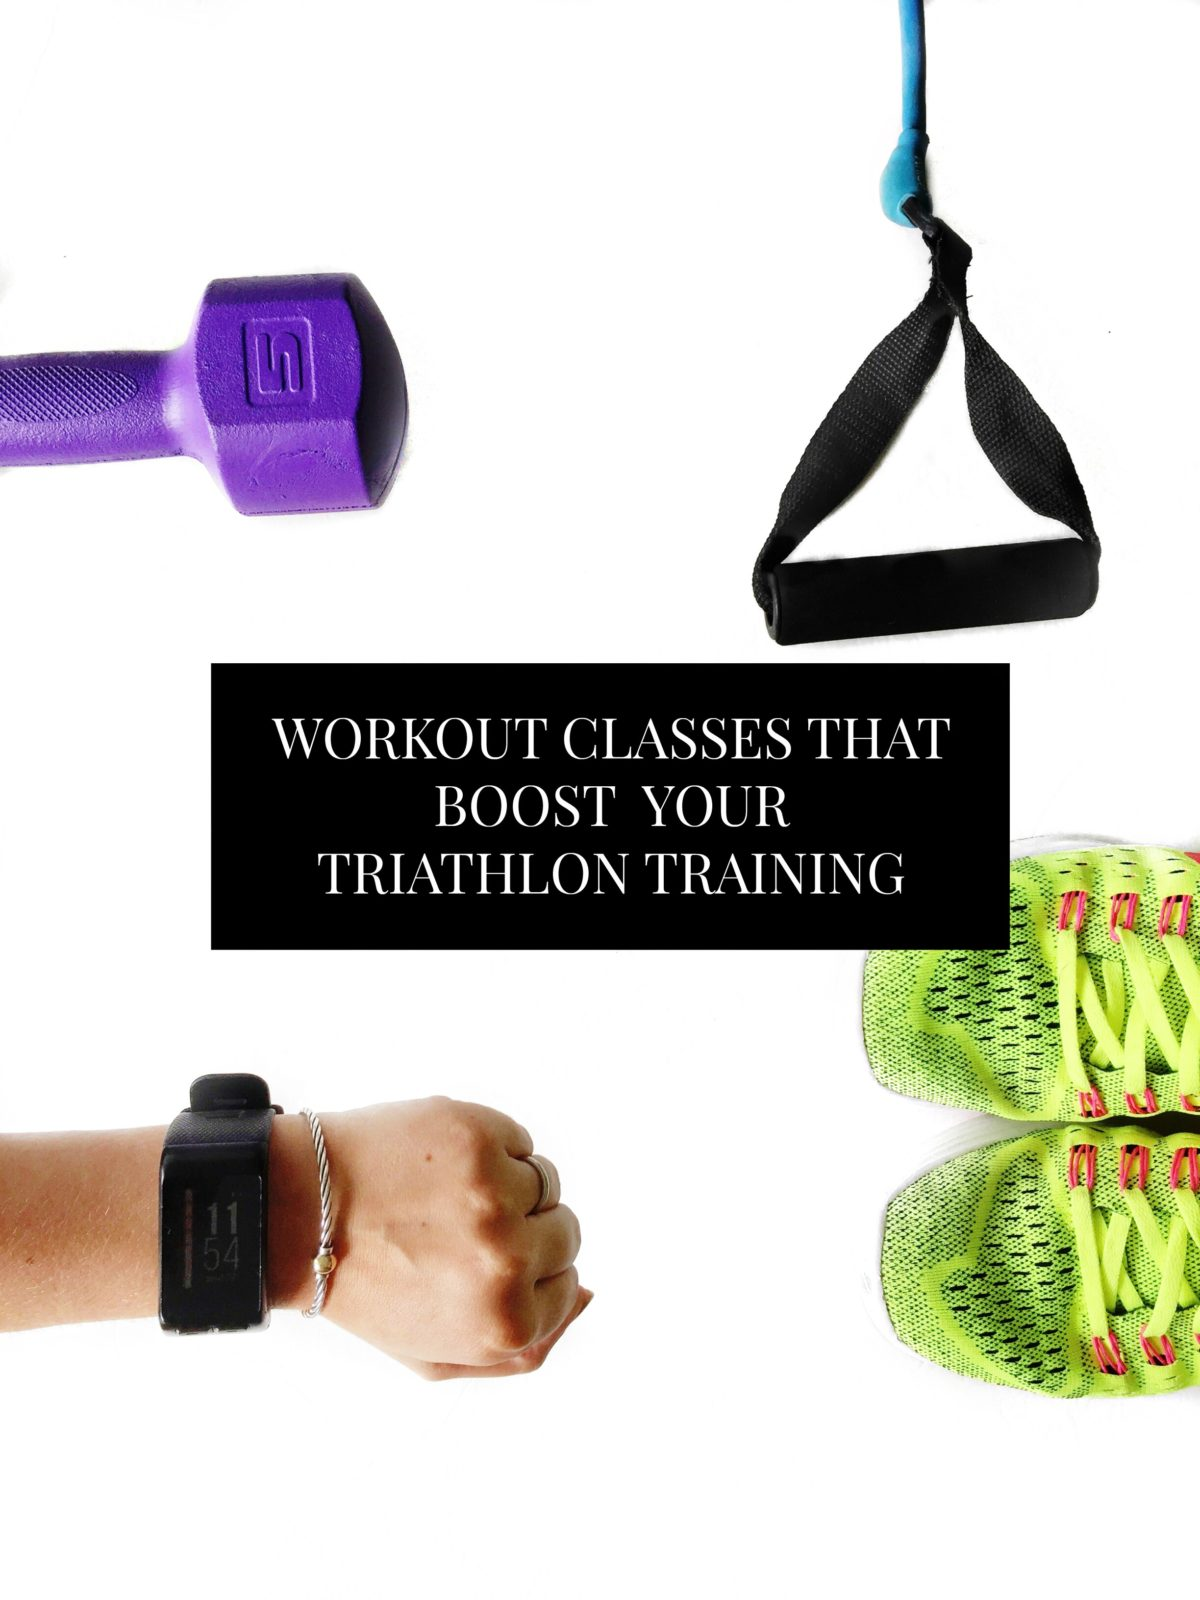 Workout classes to take to boost your triathlon training. Each of these classes pairs differently to match endurance, strength, mentality, or flexibility. // www.ElleTalk.com